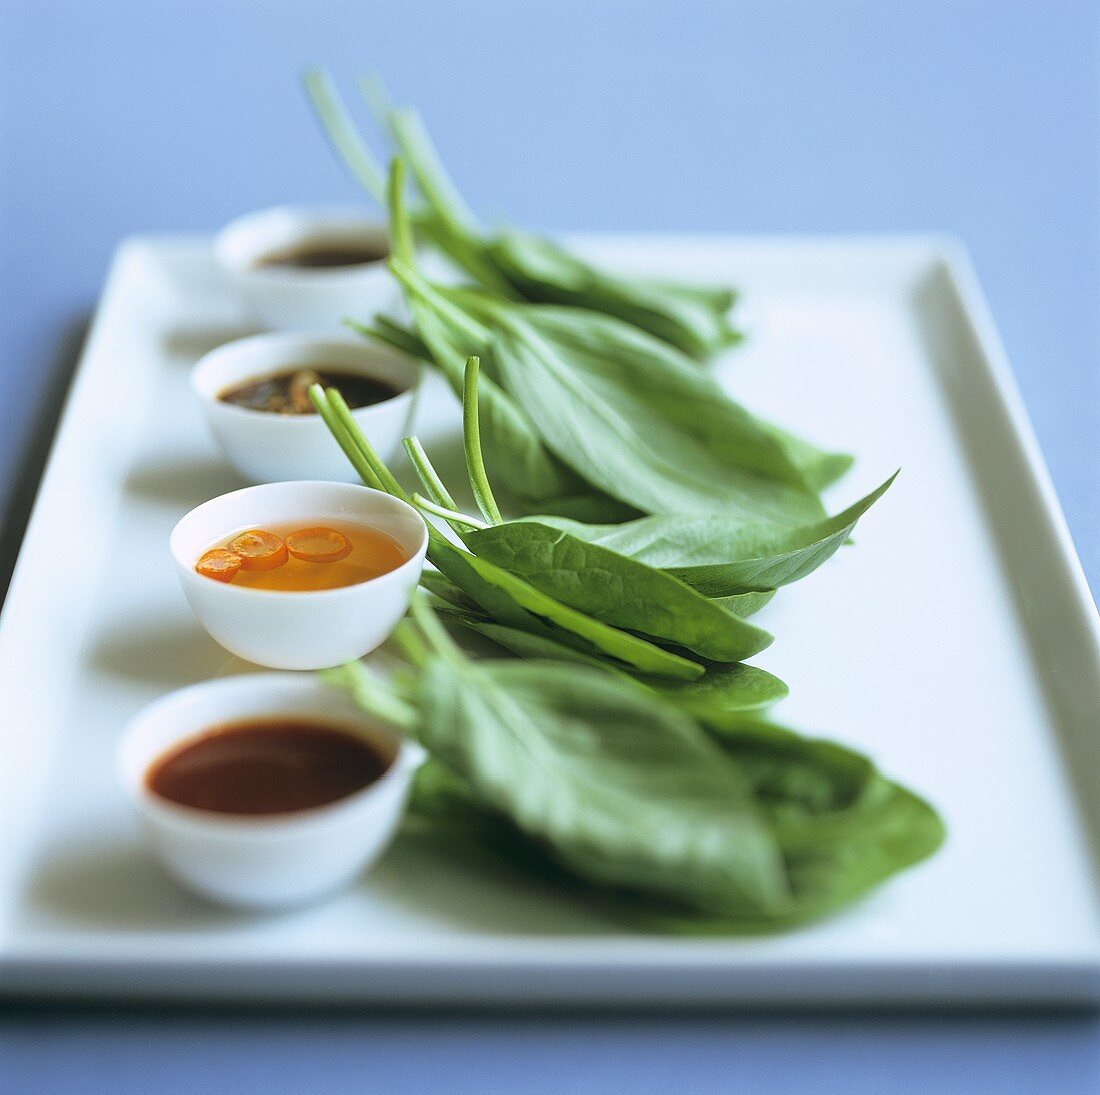 Various Thai sauces and leaves of the Betel plant